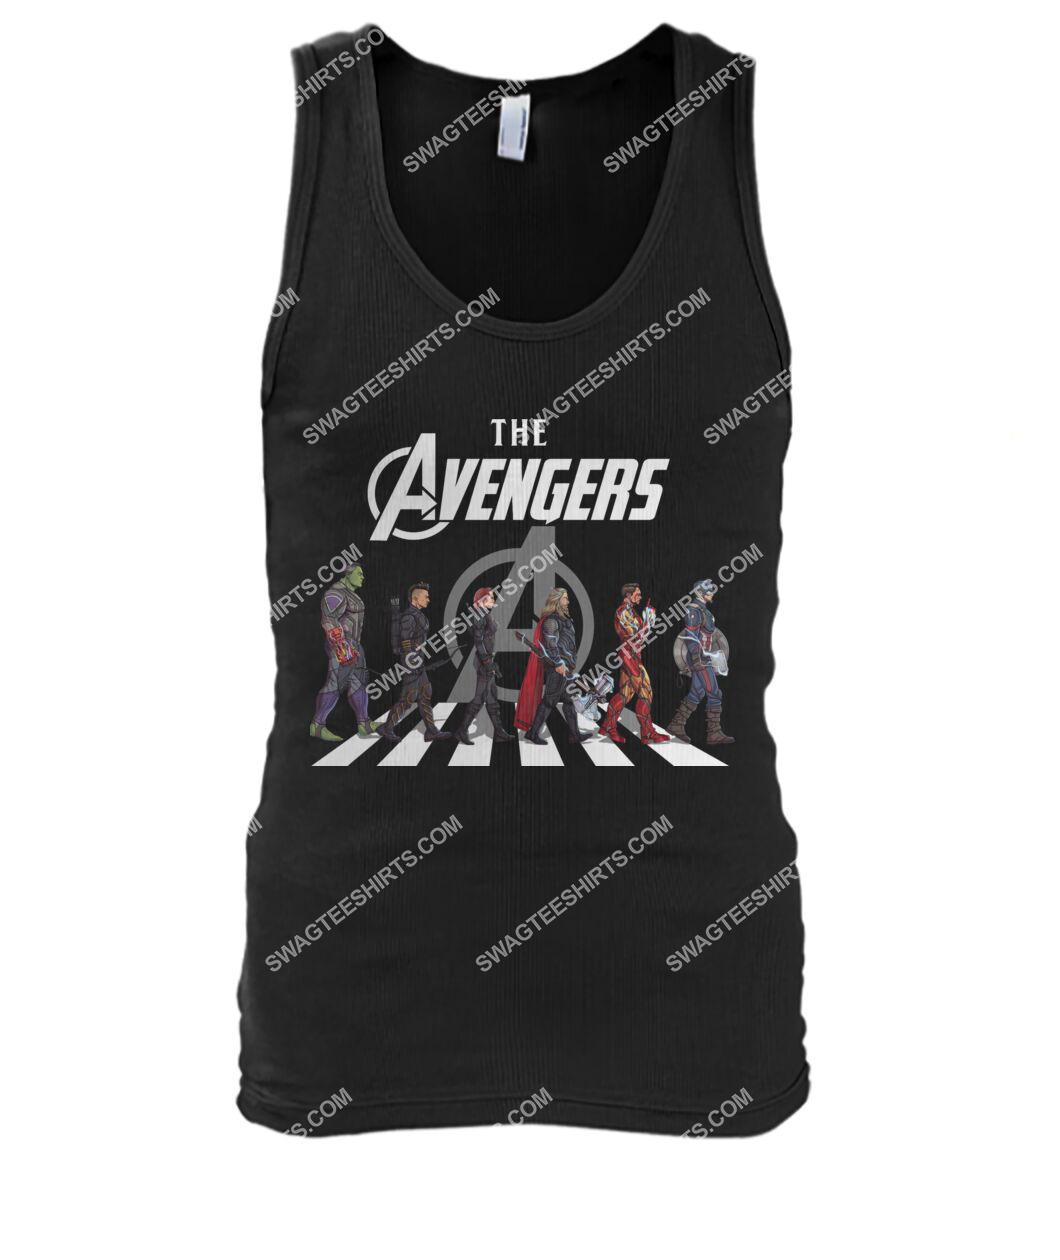 the avengers marvel walking abbey road signature tank top 1